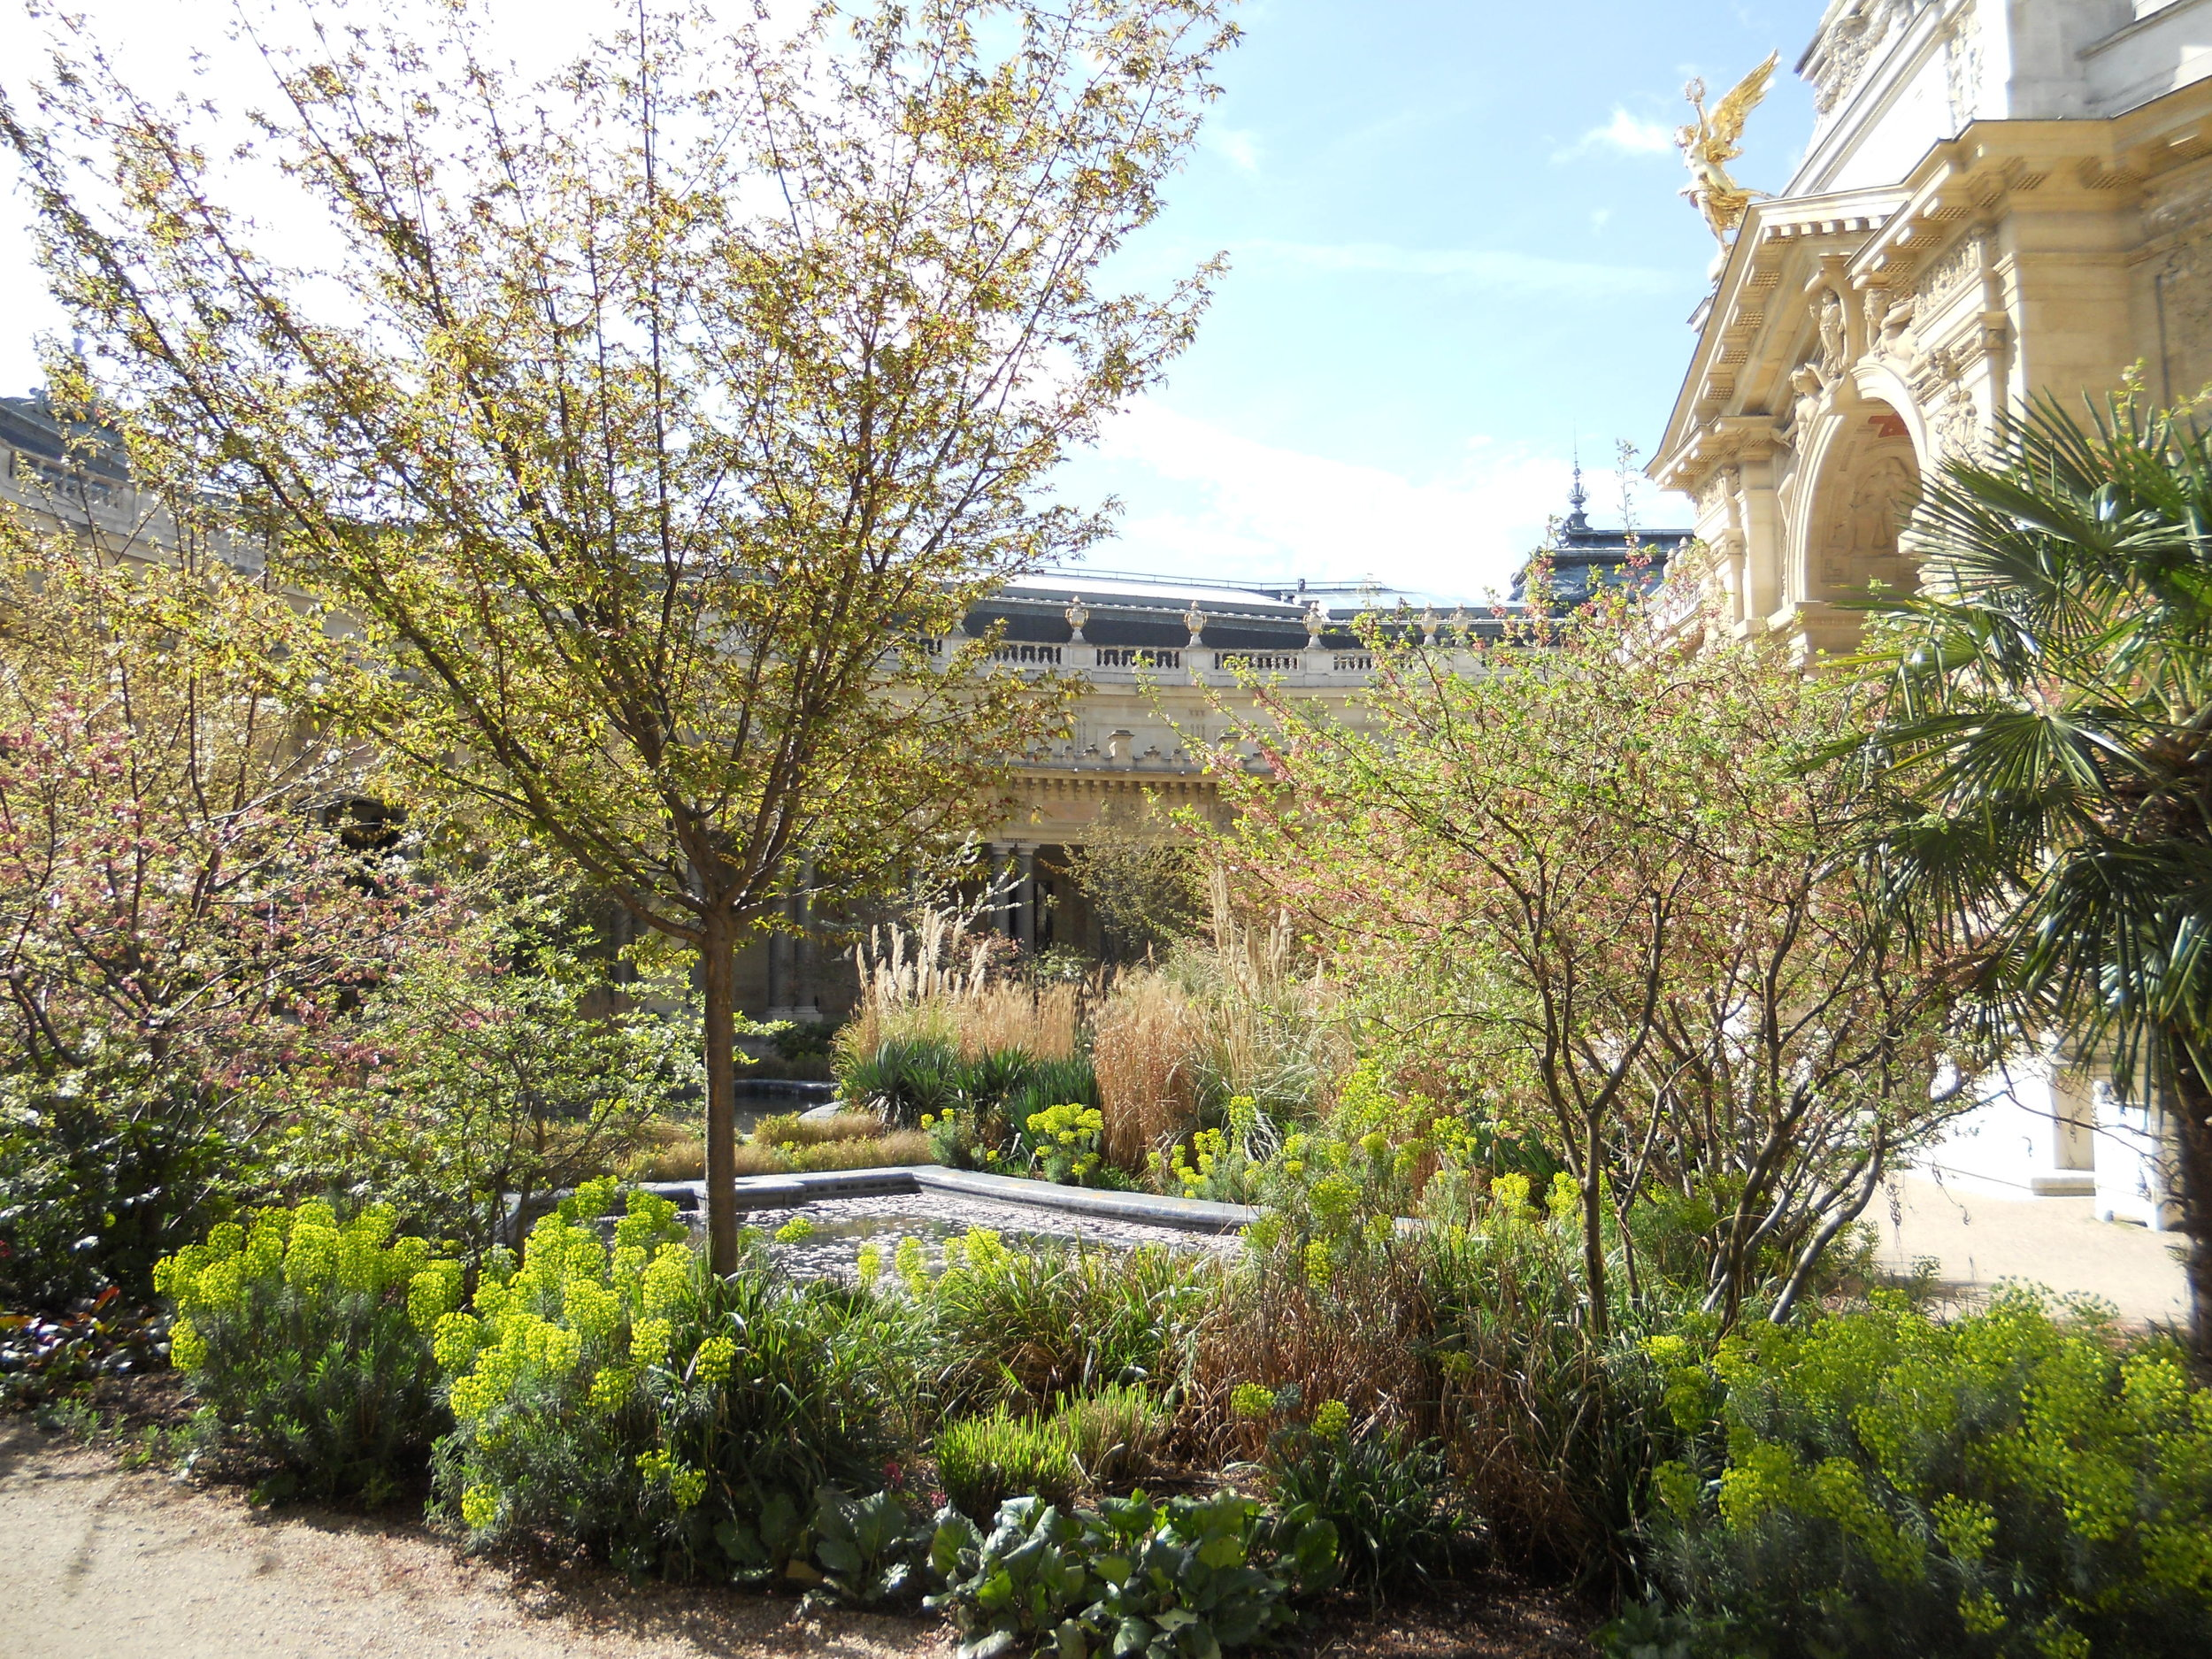 Courtyard garden at the Petit Palais